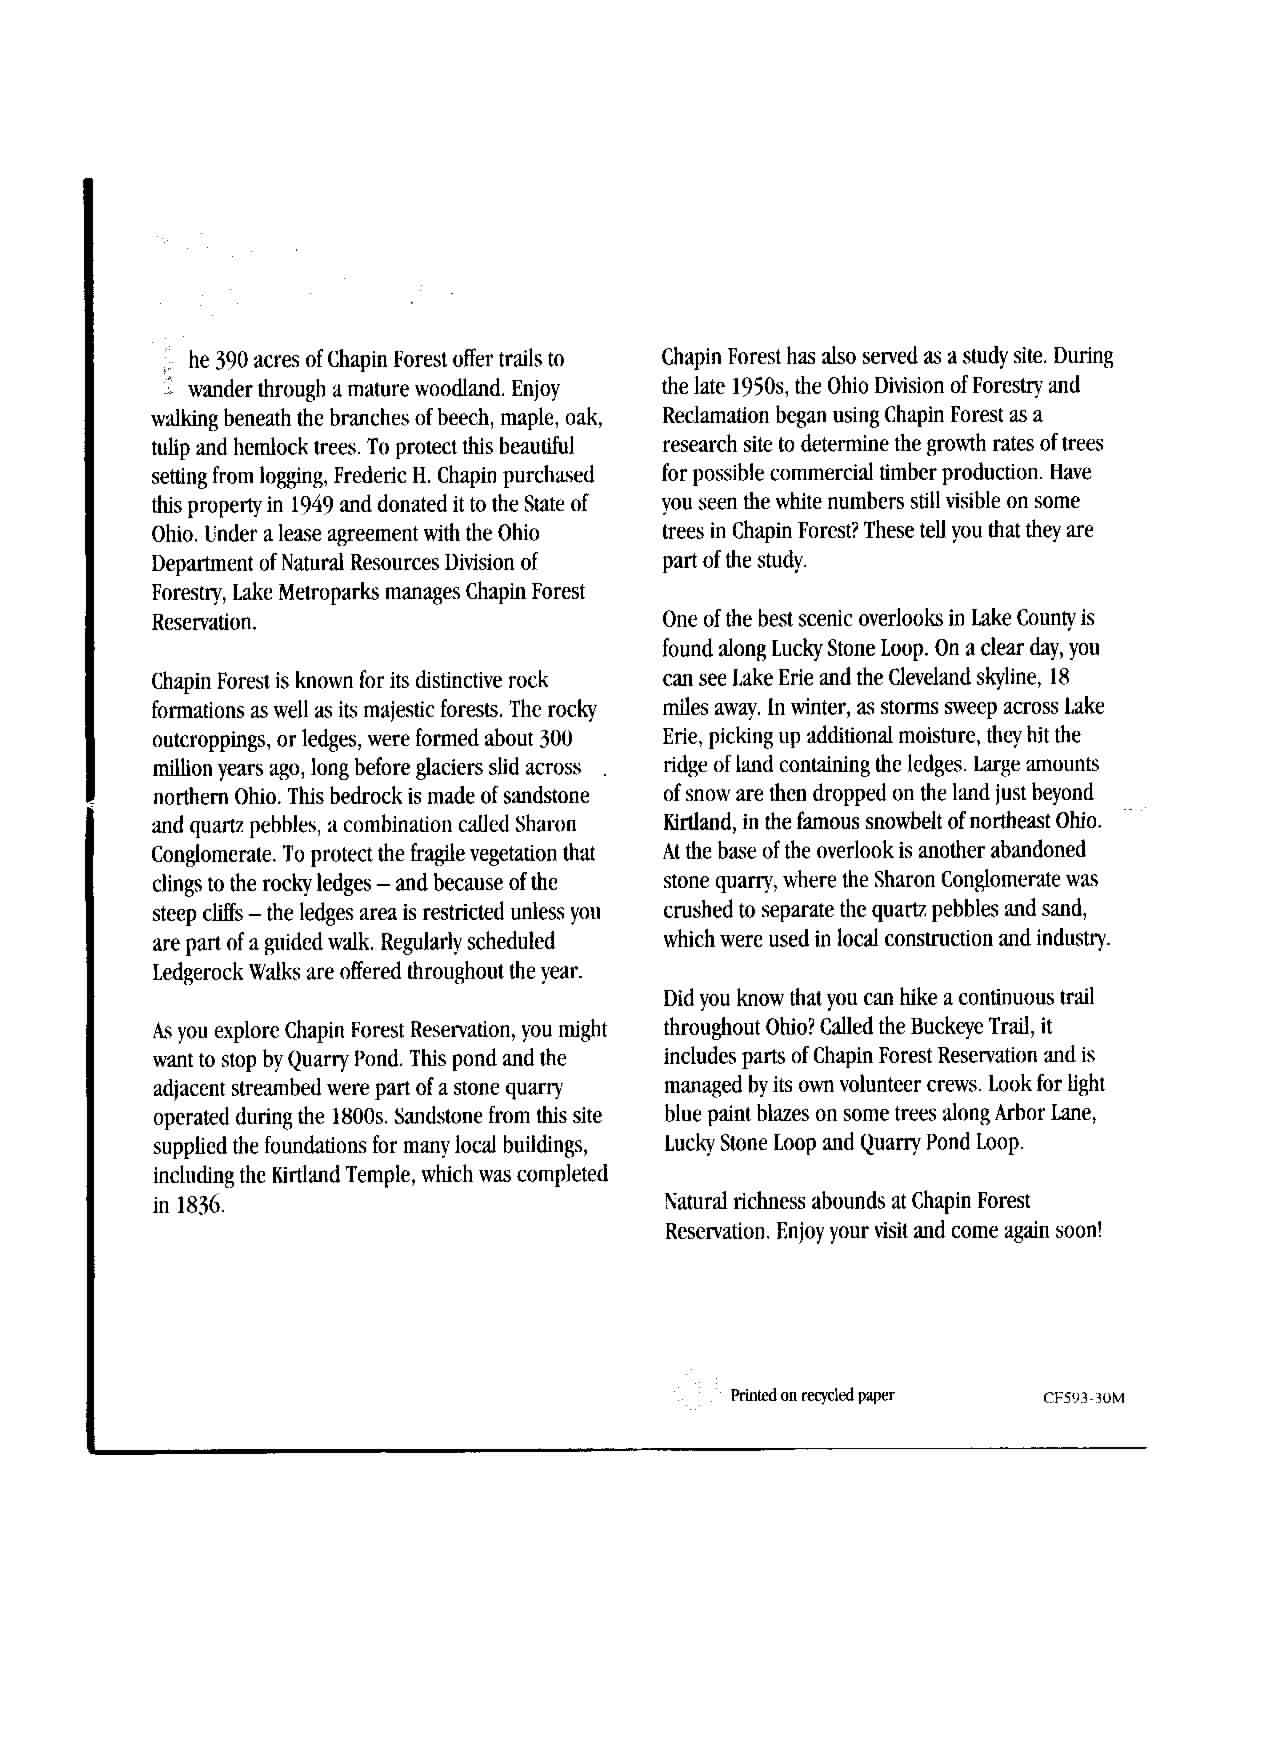 Chapin Forest Reservation Brochure Part 2